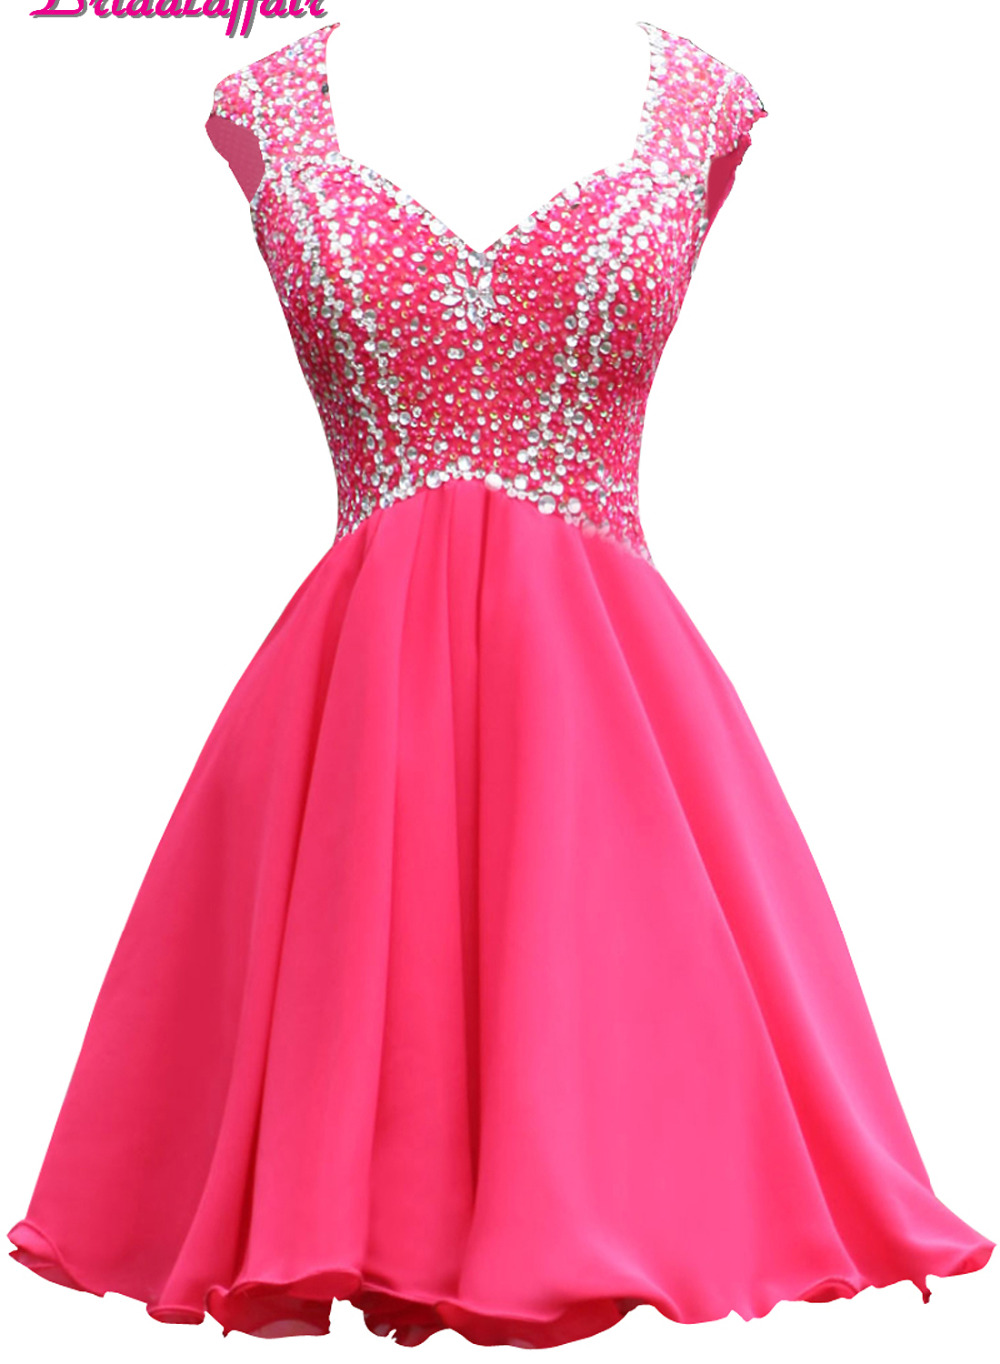 BridalaffairReal PhotoBeadingCrystal Short   Prom     Dresses   2019 Custom made Backless Short Sleeve Mini Party   Dress   Vestido de festa